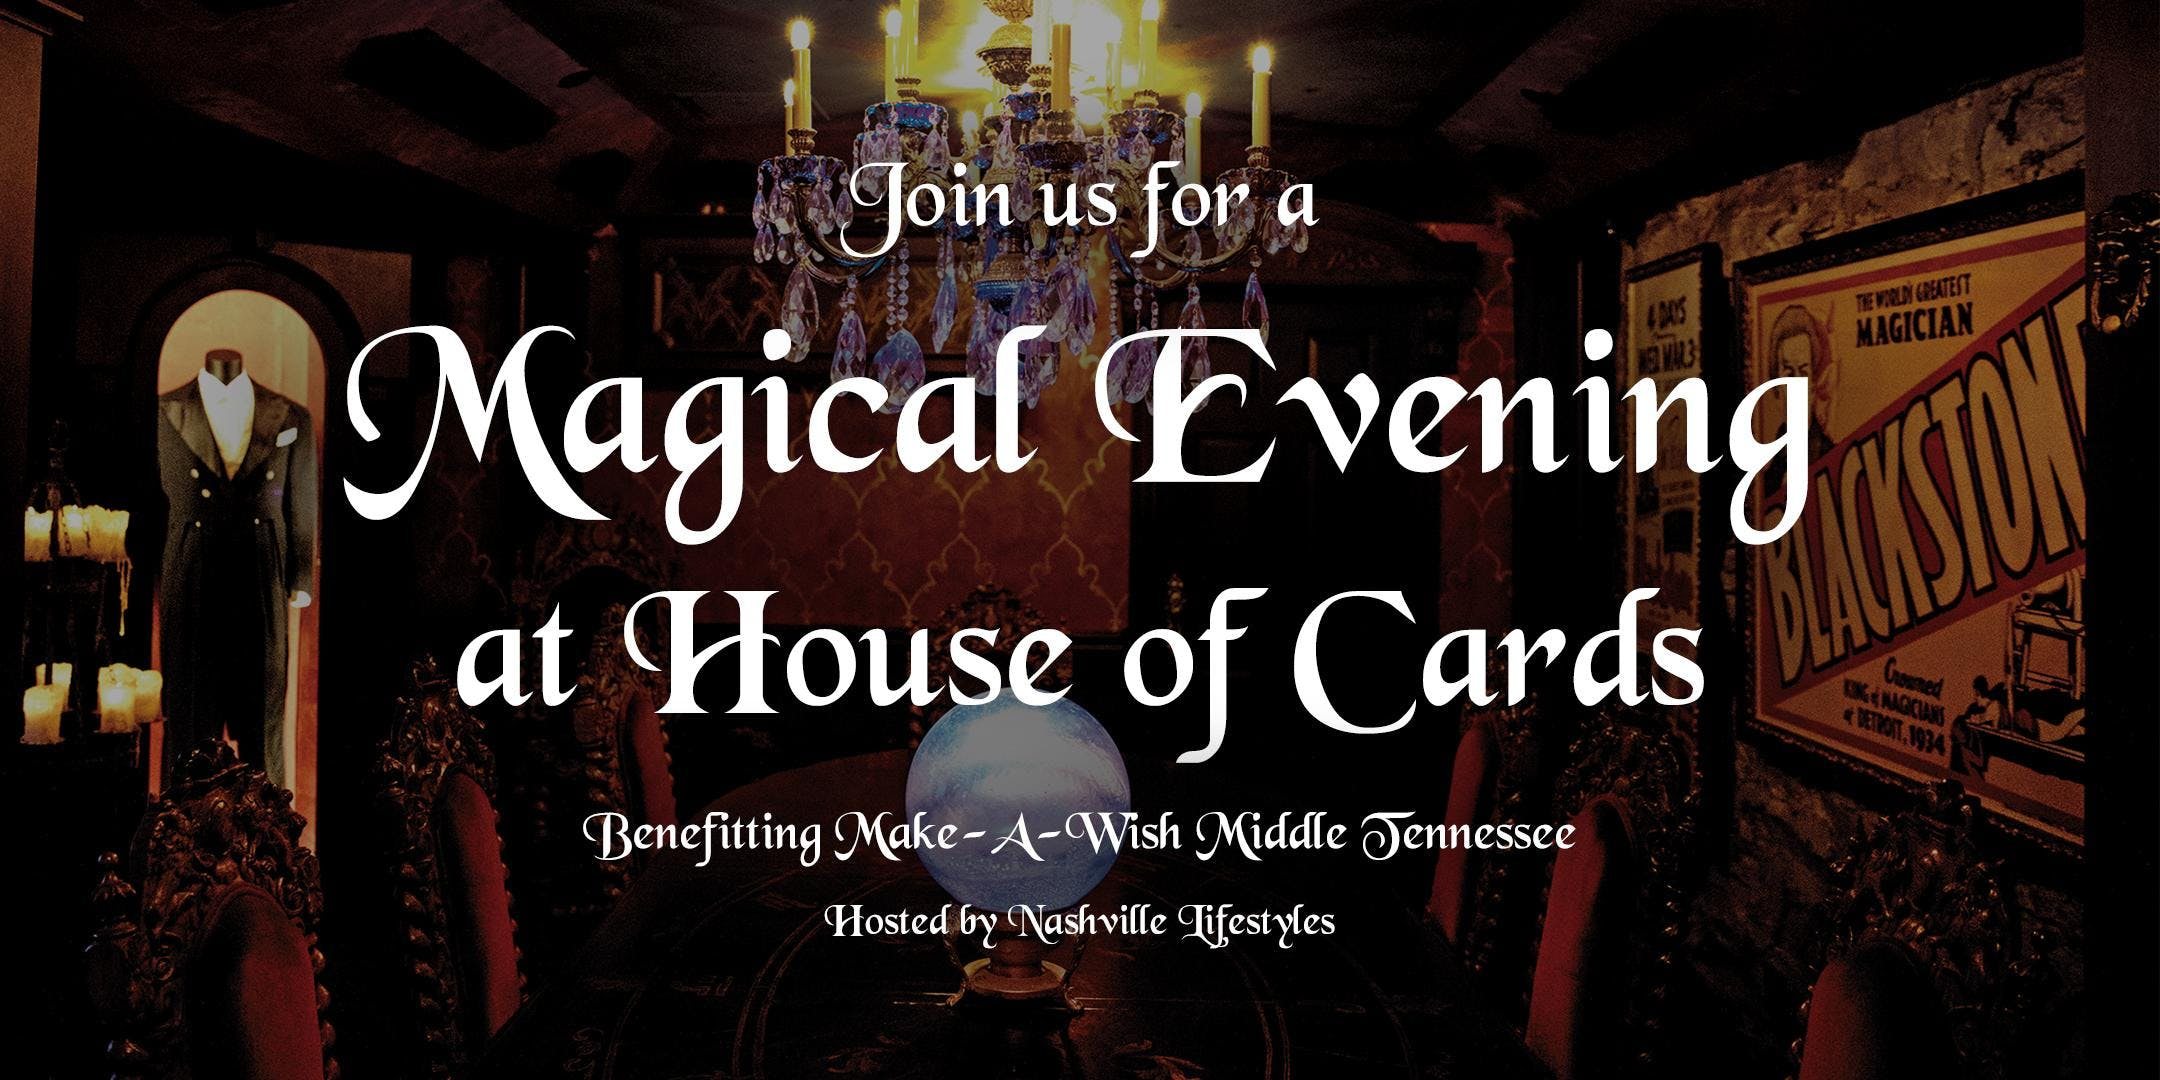 Nashville Lifestyles Presents: A Magical Even